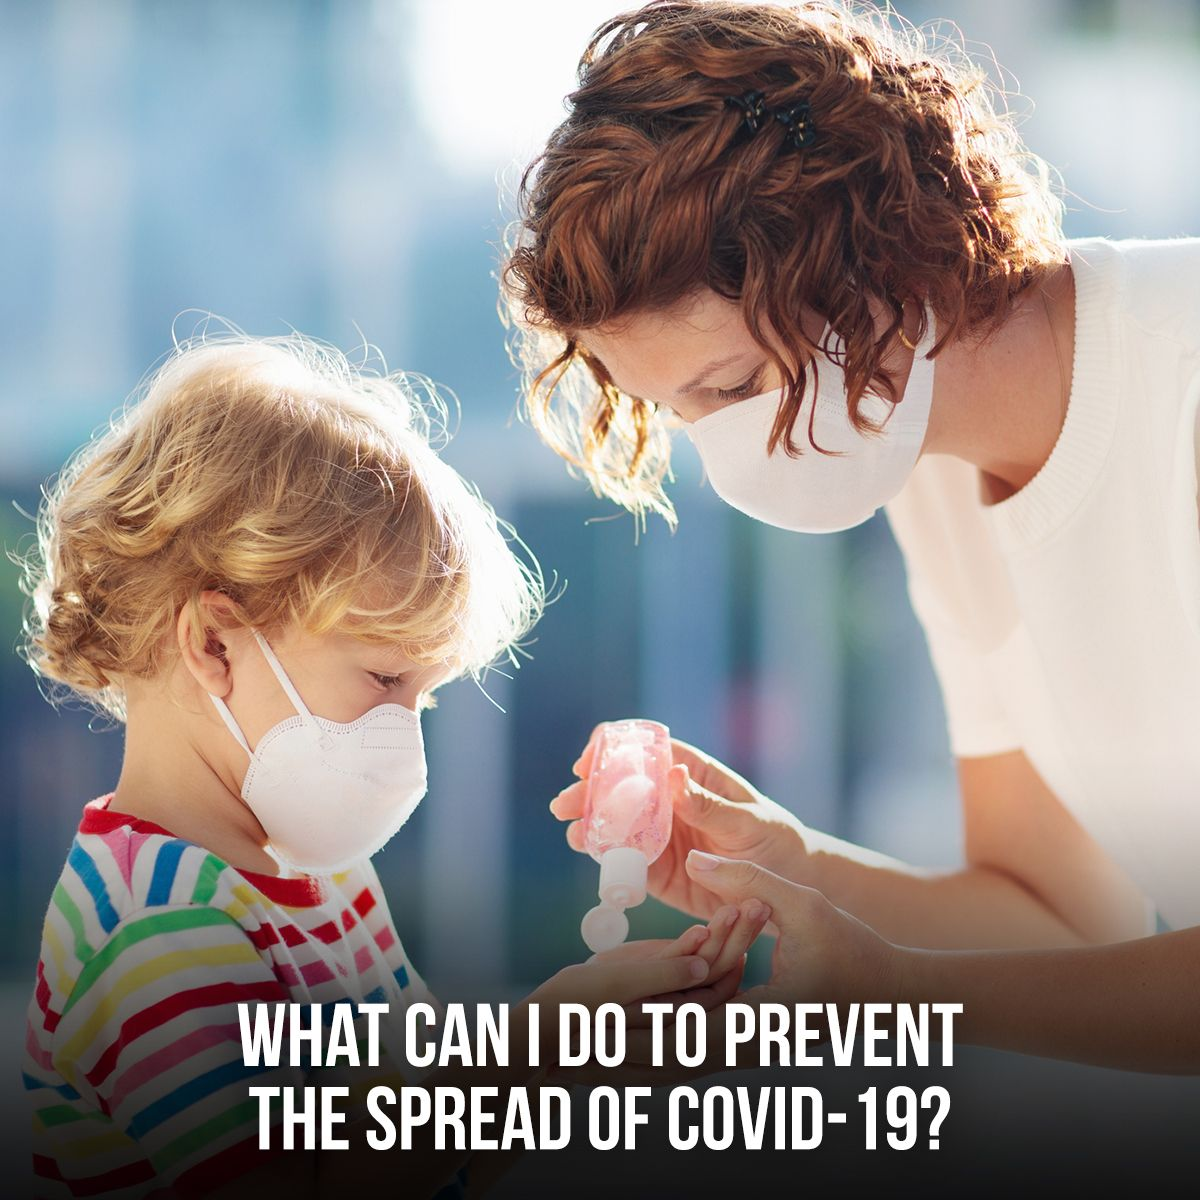 What Can I Do to Prevent the Spread of COVID-19?